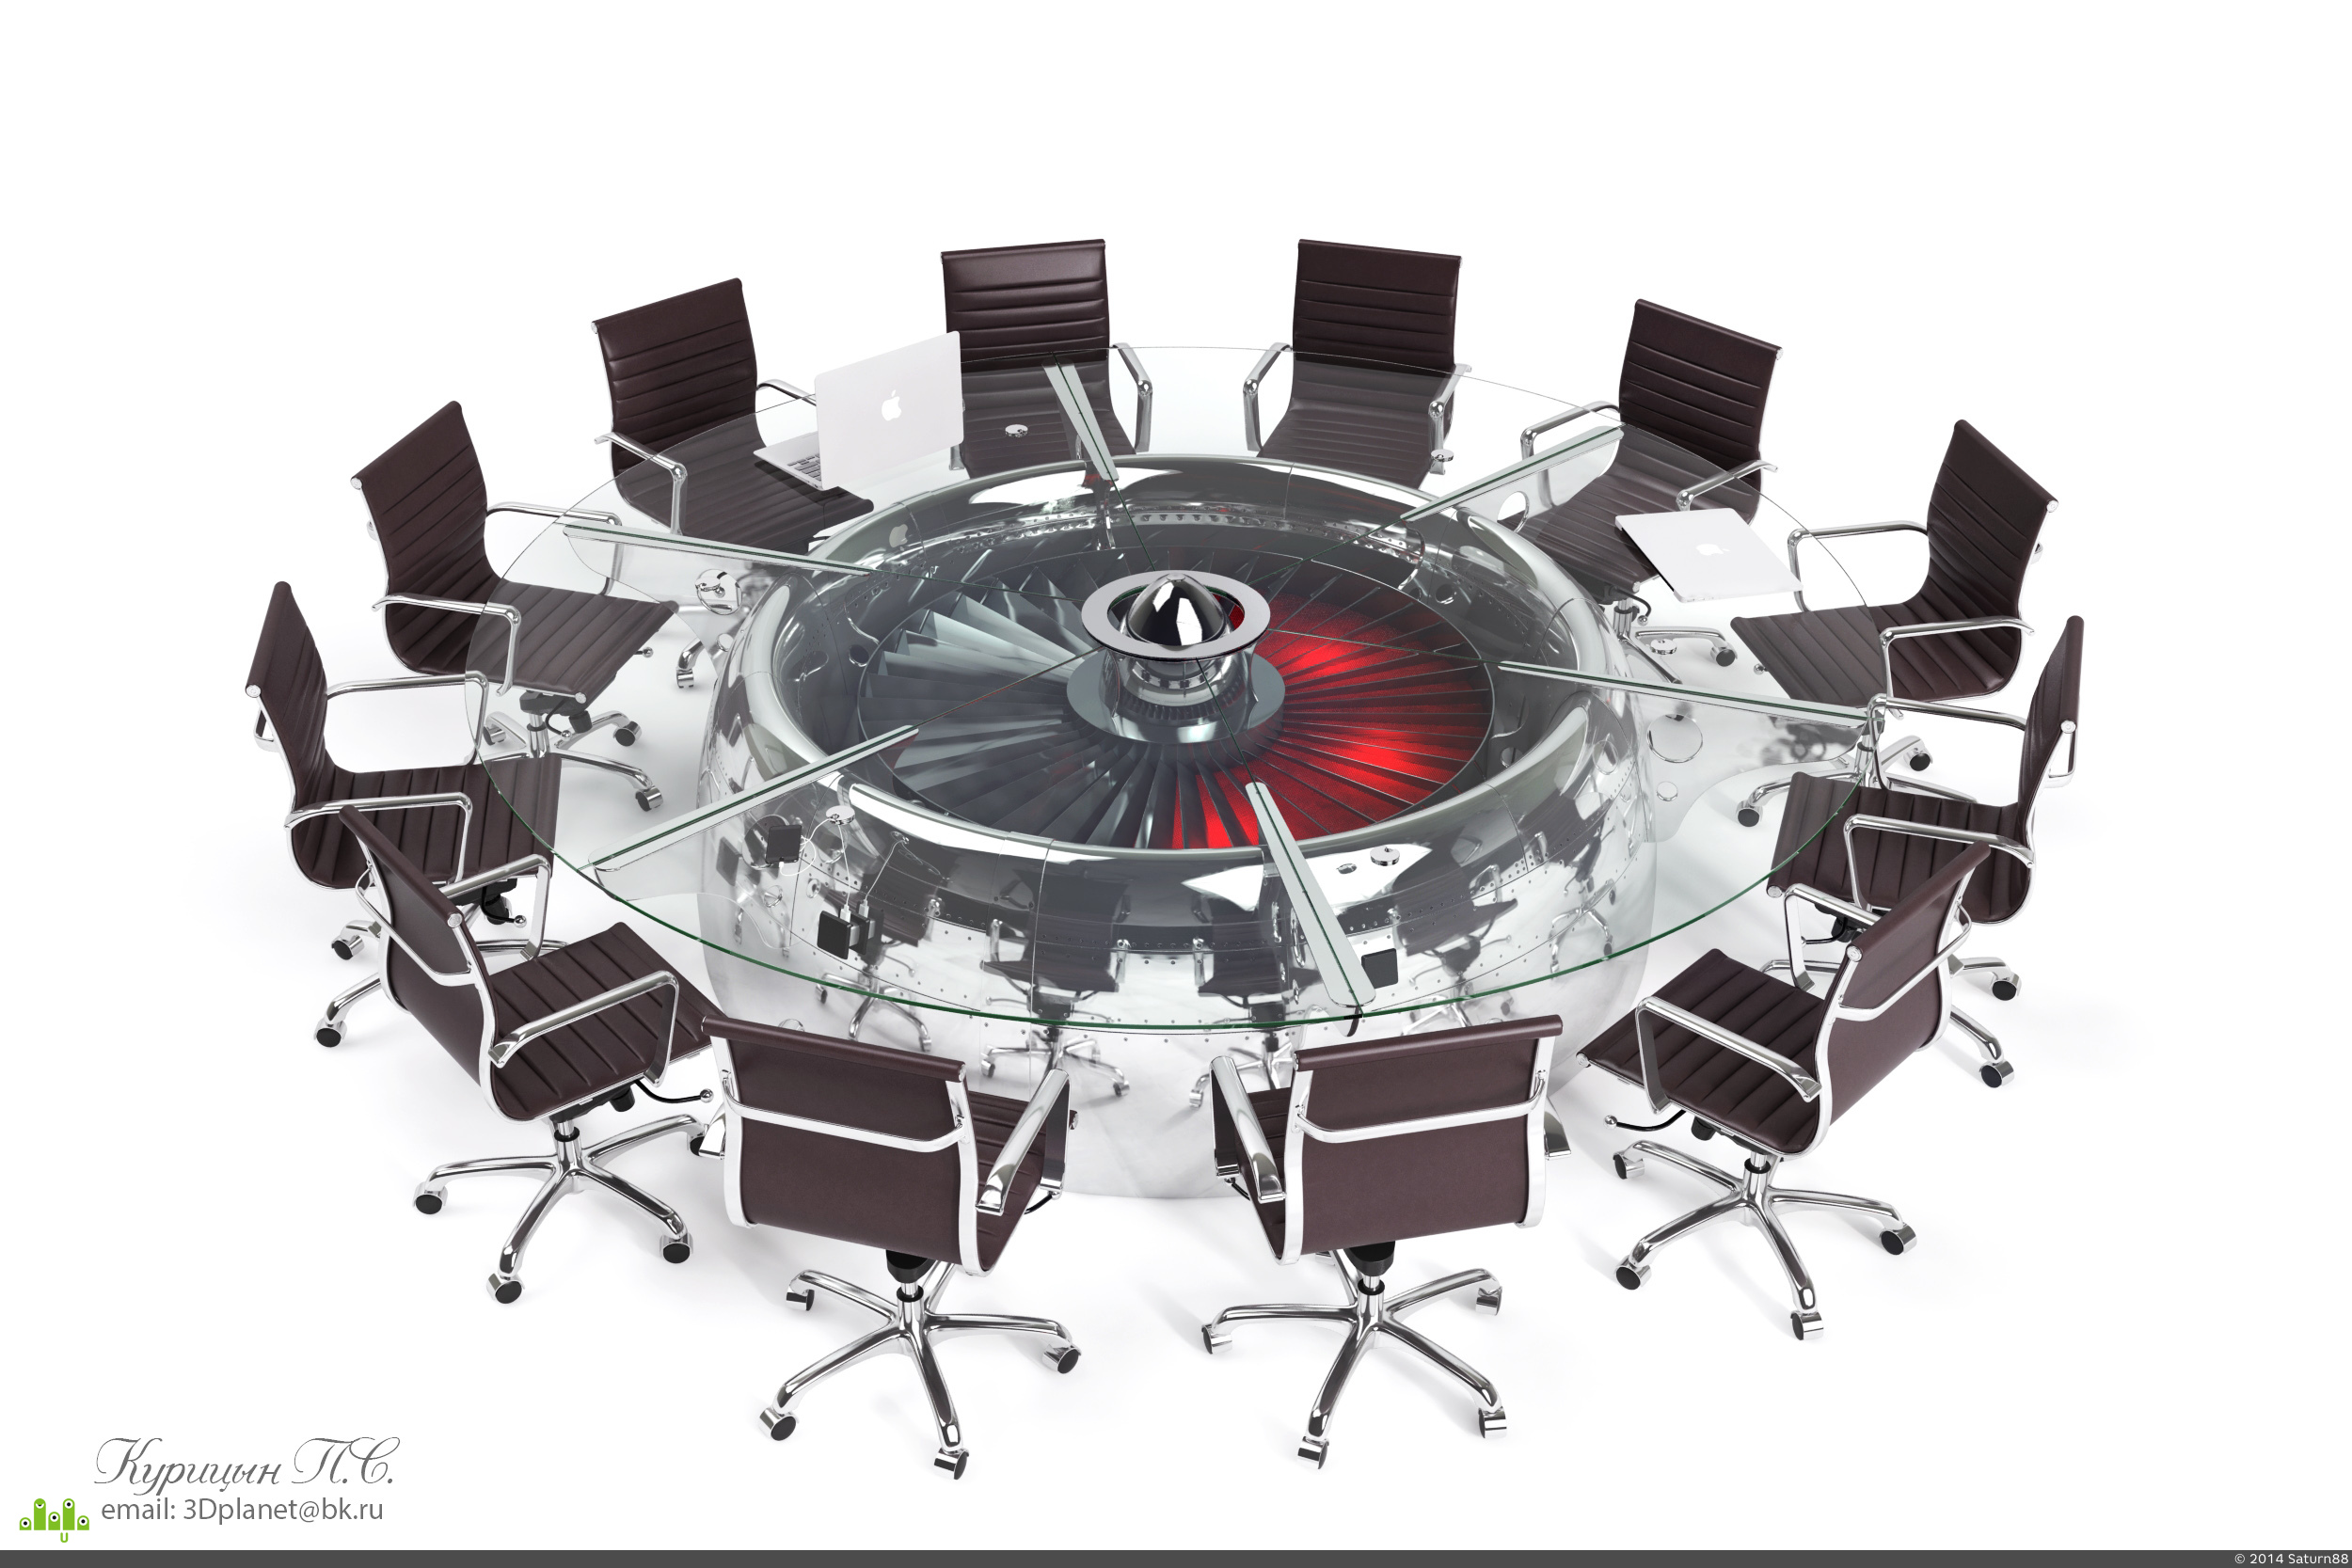 preview Boeing 747 Jumbo Jet Conference Table  Epic